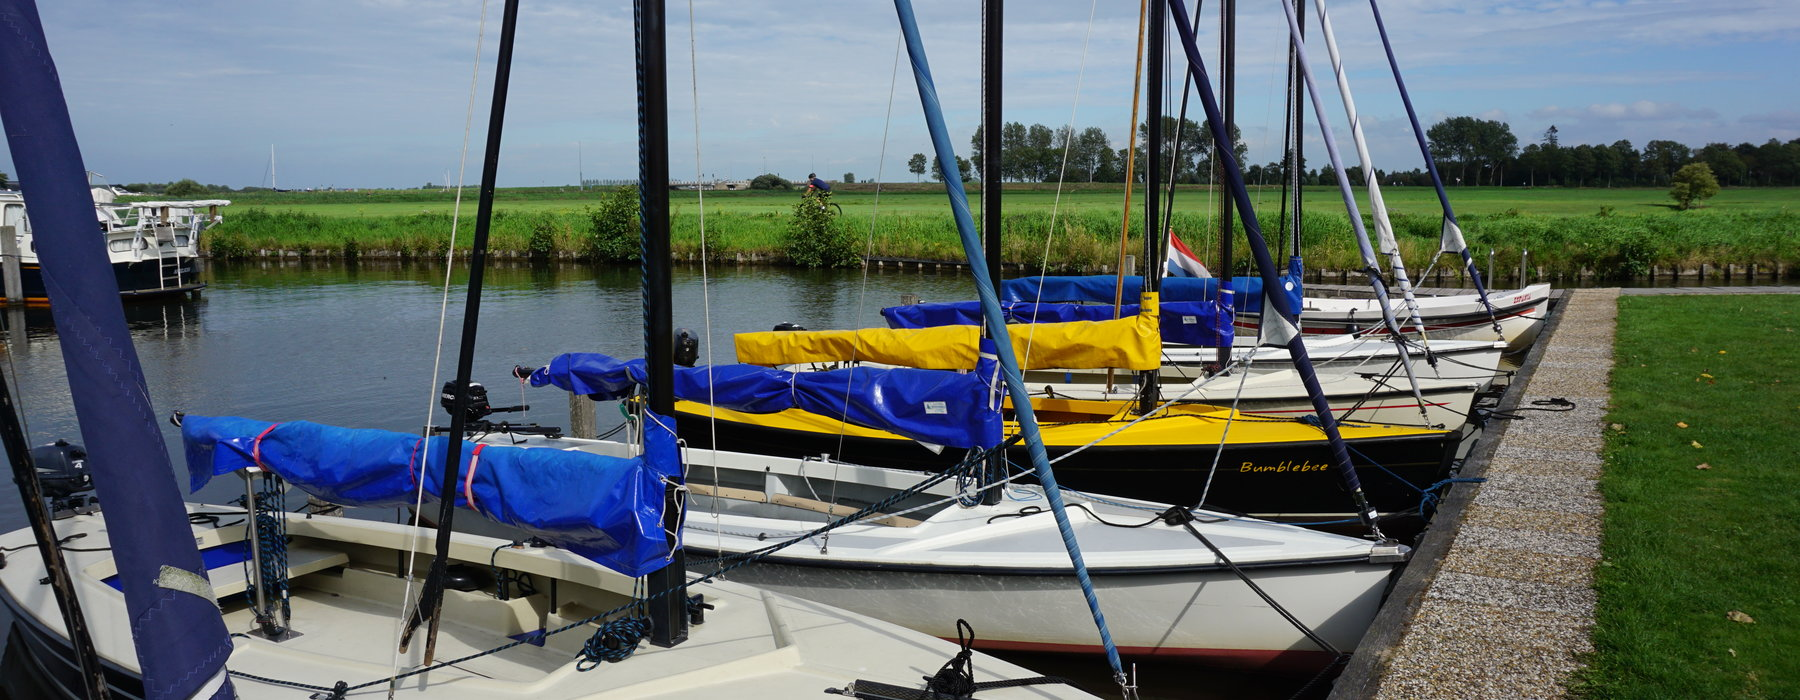 Segelboot mieten in Friesland